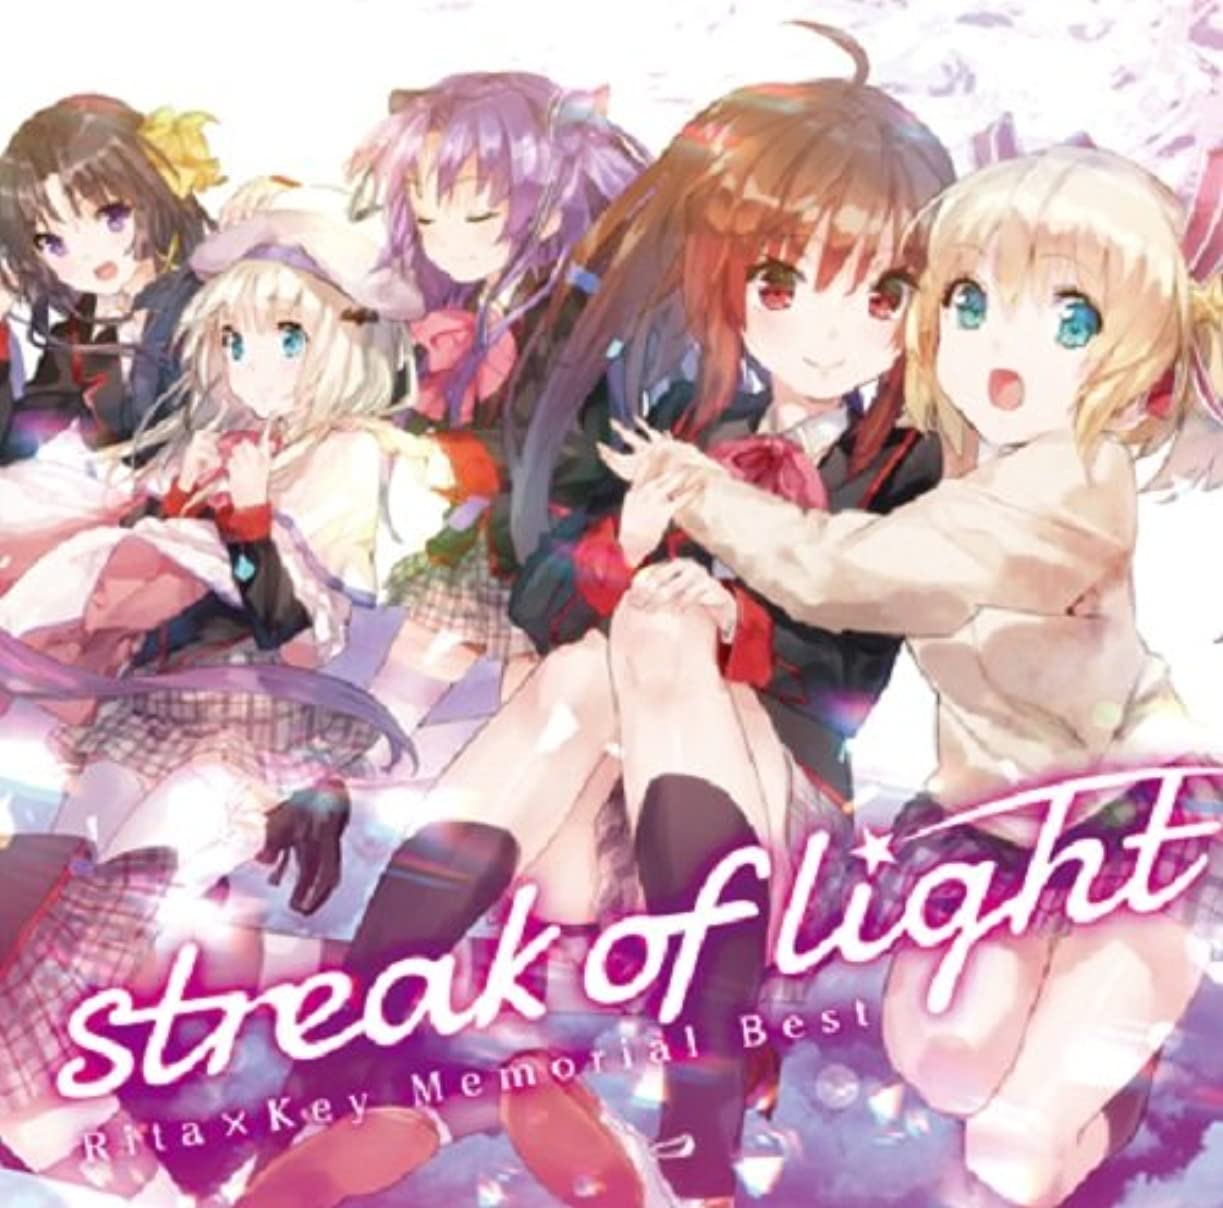 テーマ倍率攻撃Rita×Key Memorial Best 『streak of light』